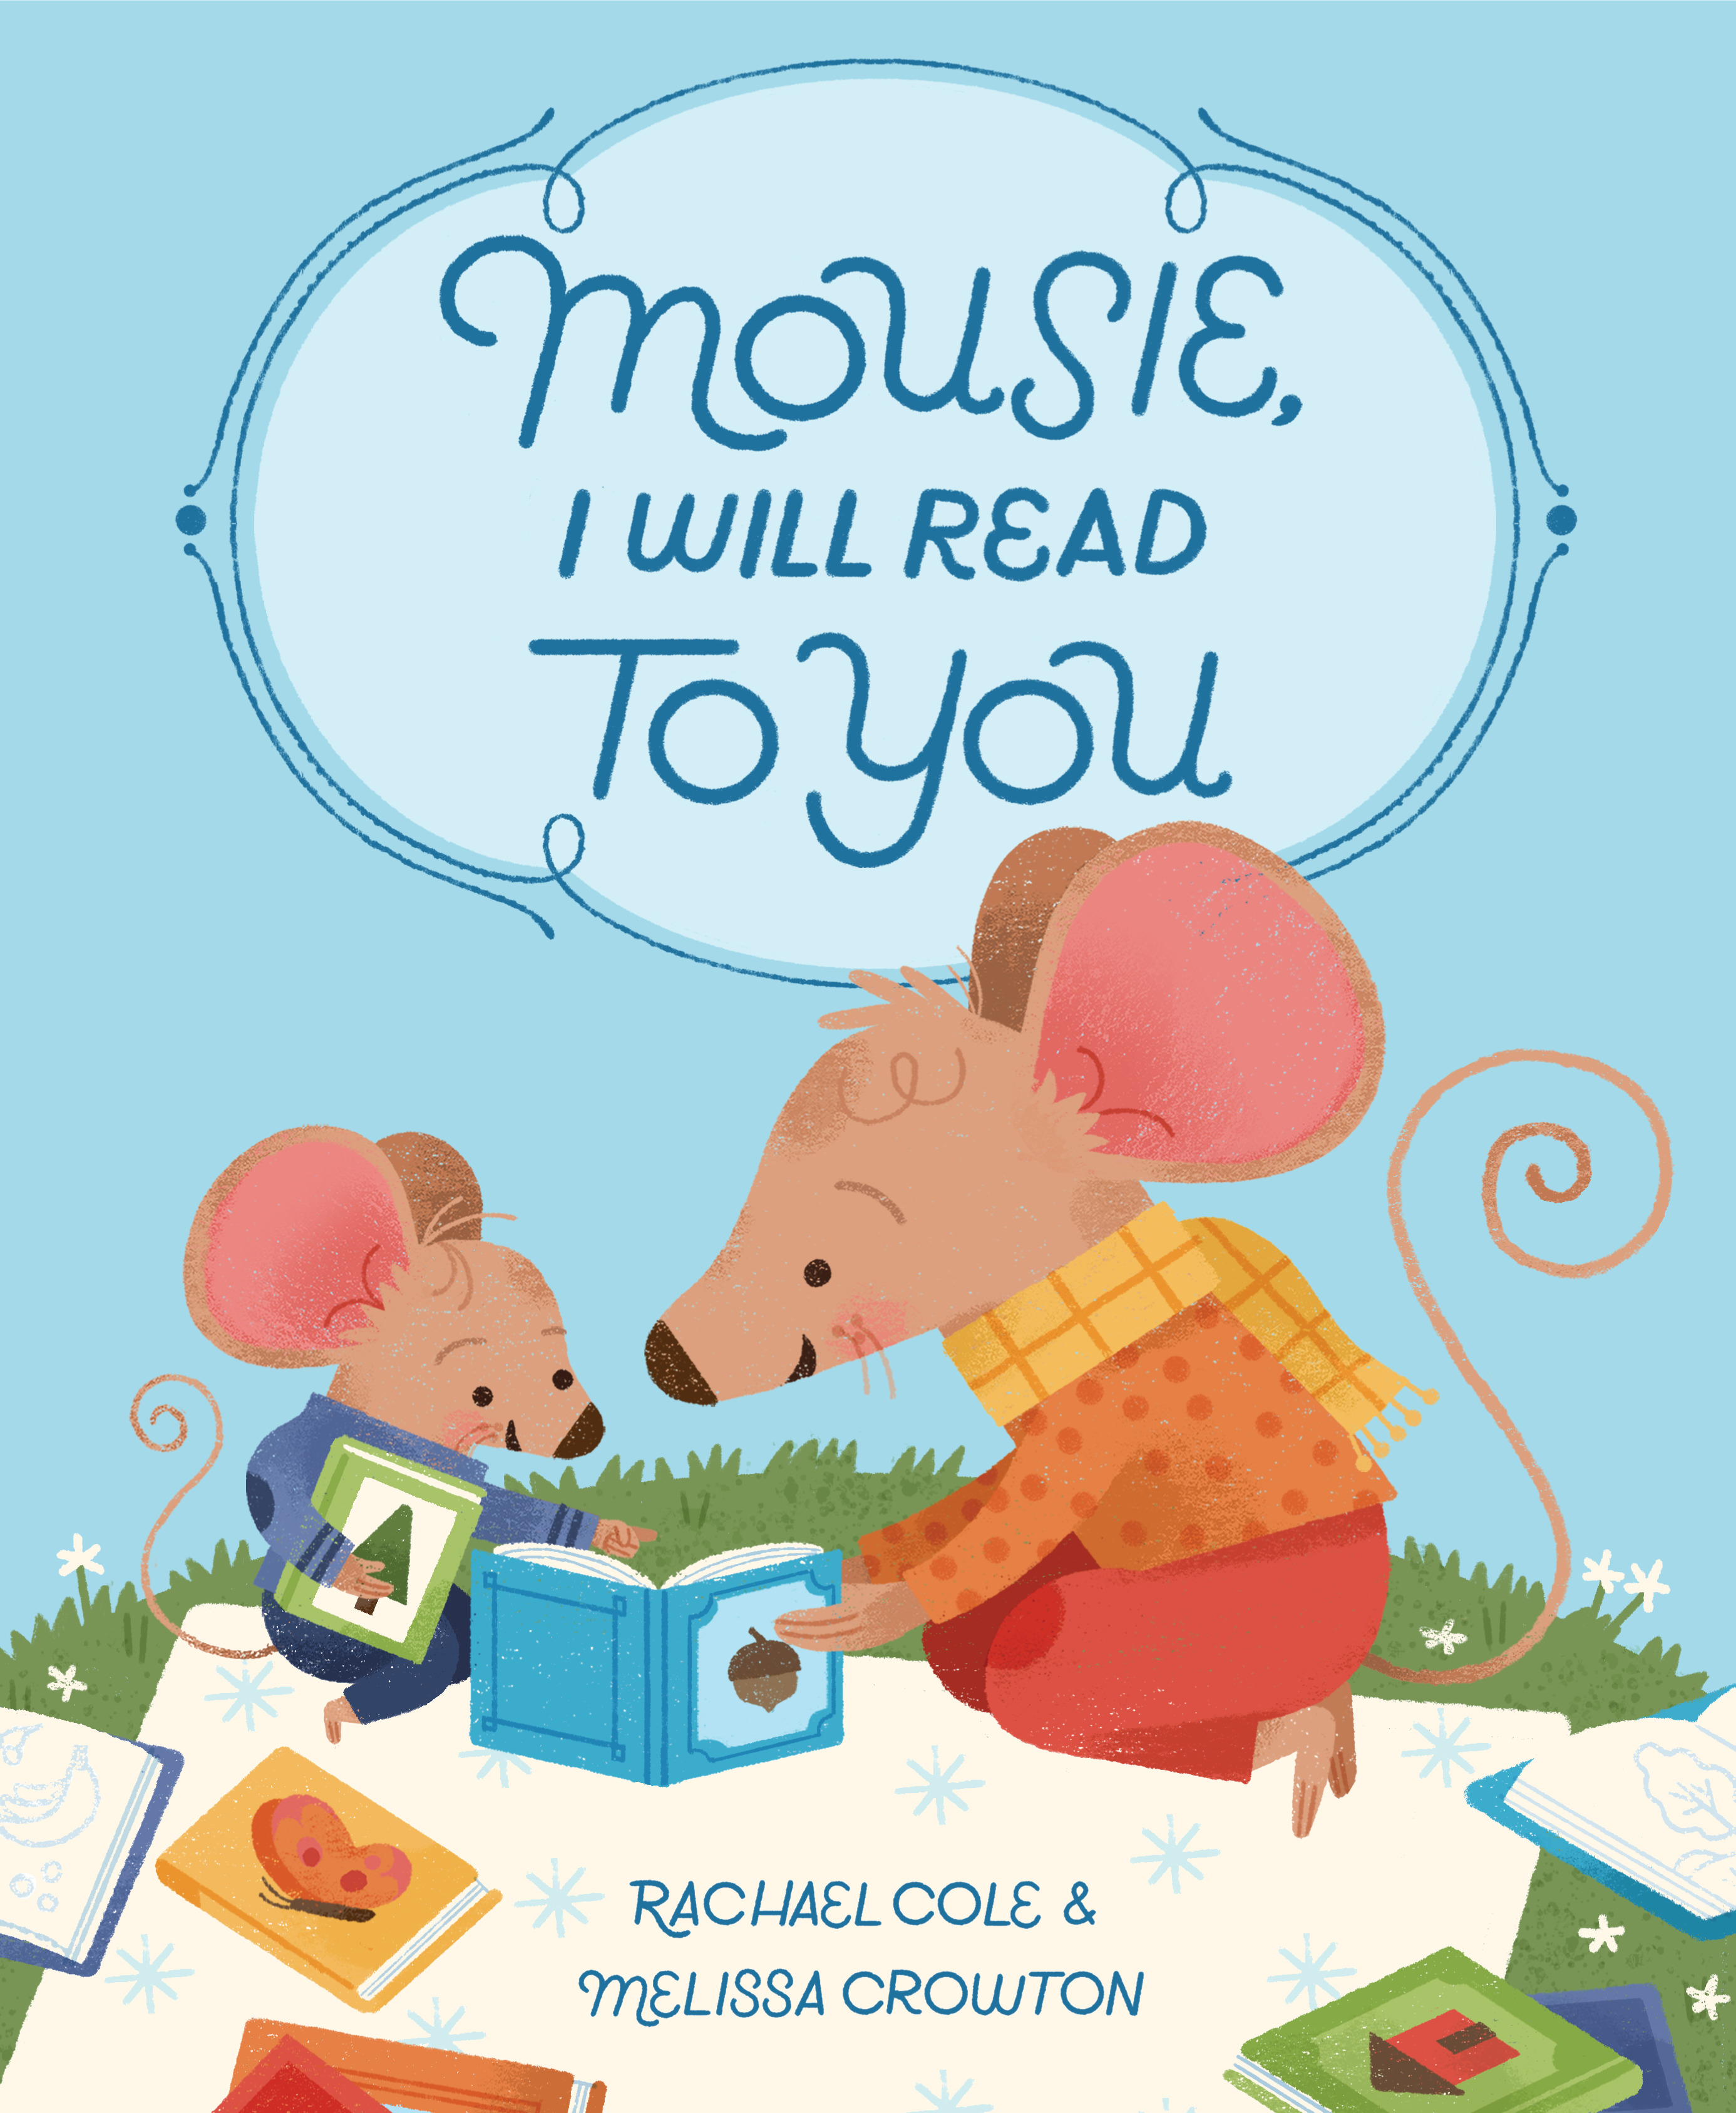 Sunday Story Time with Rachael Cole (Author of Mousie, I Will Read to You)